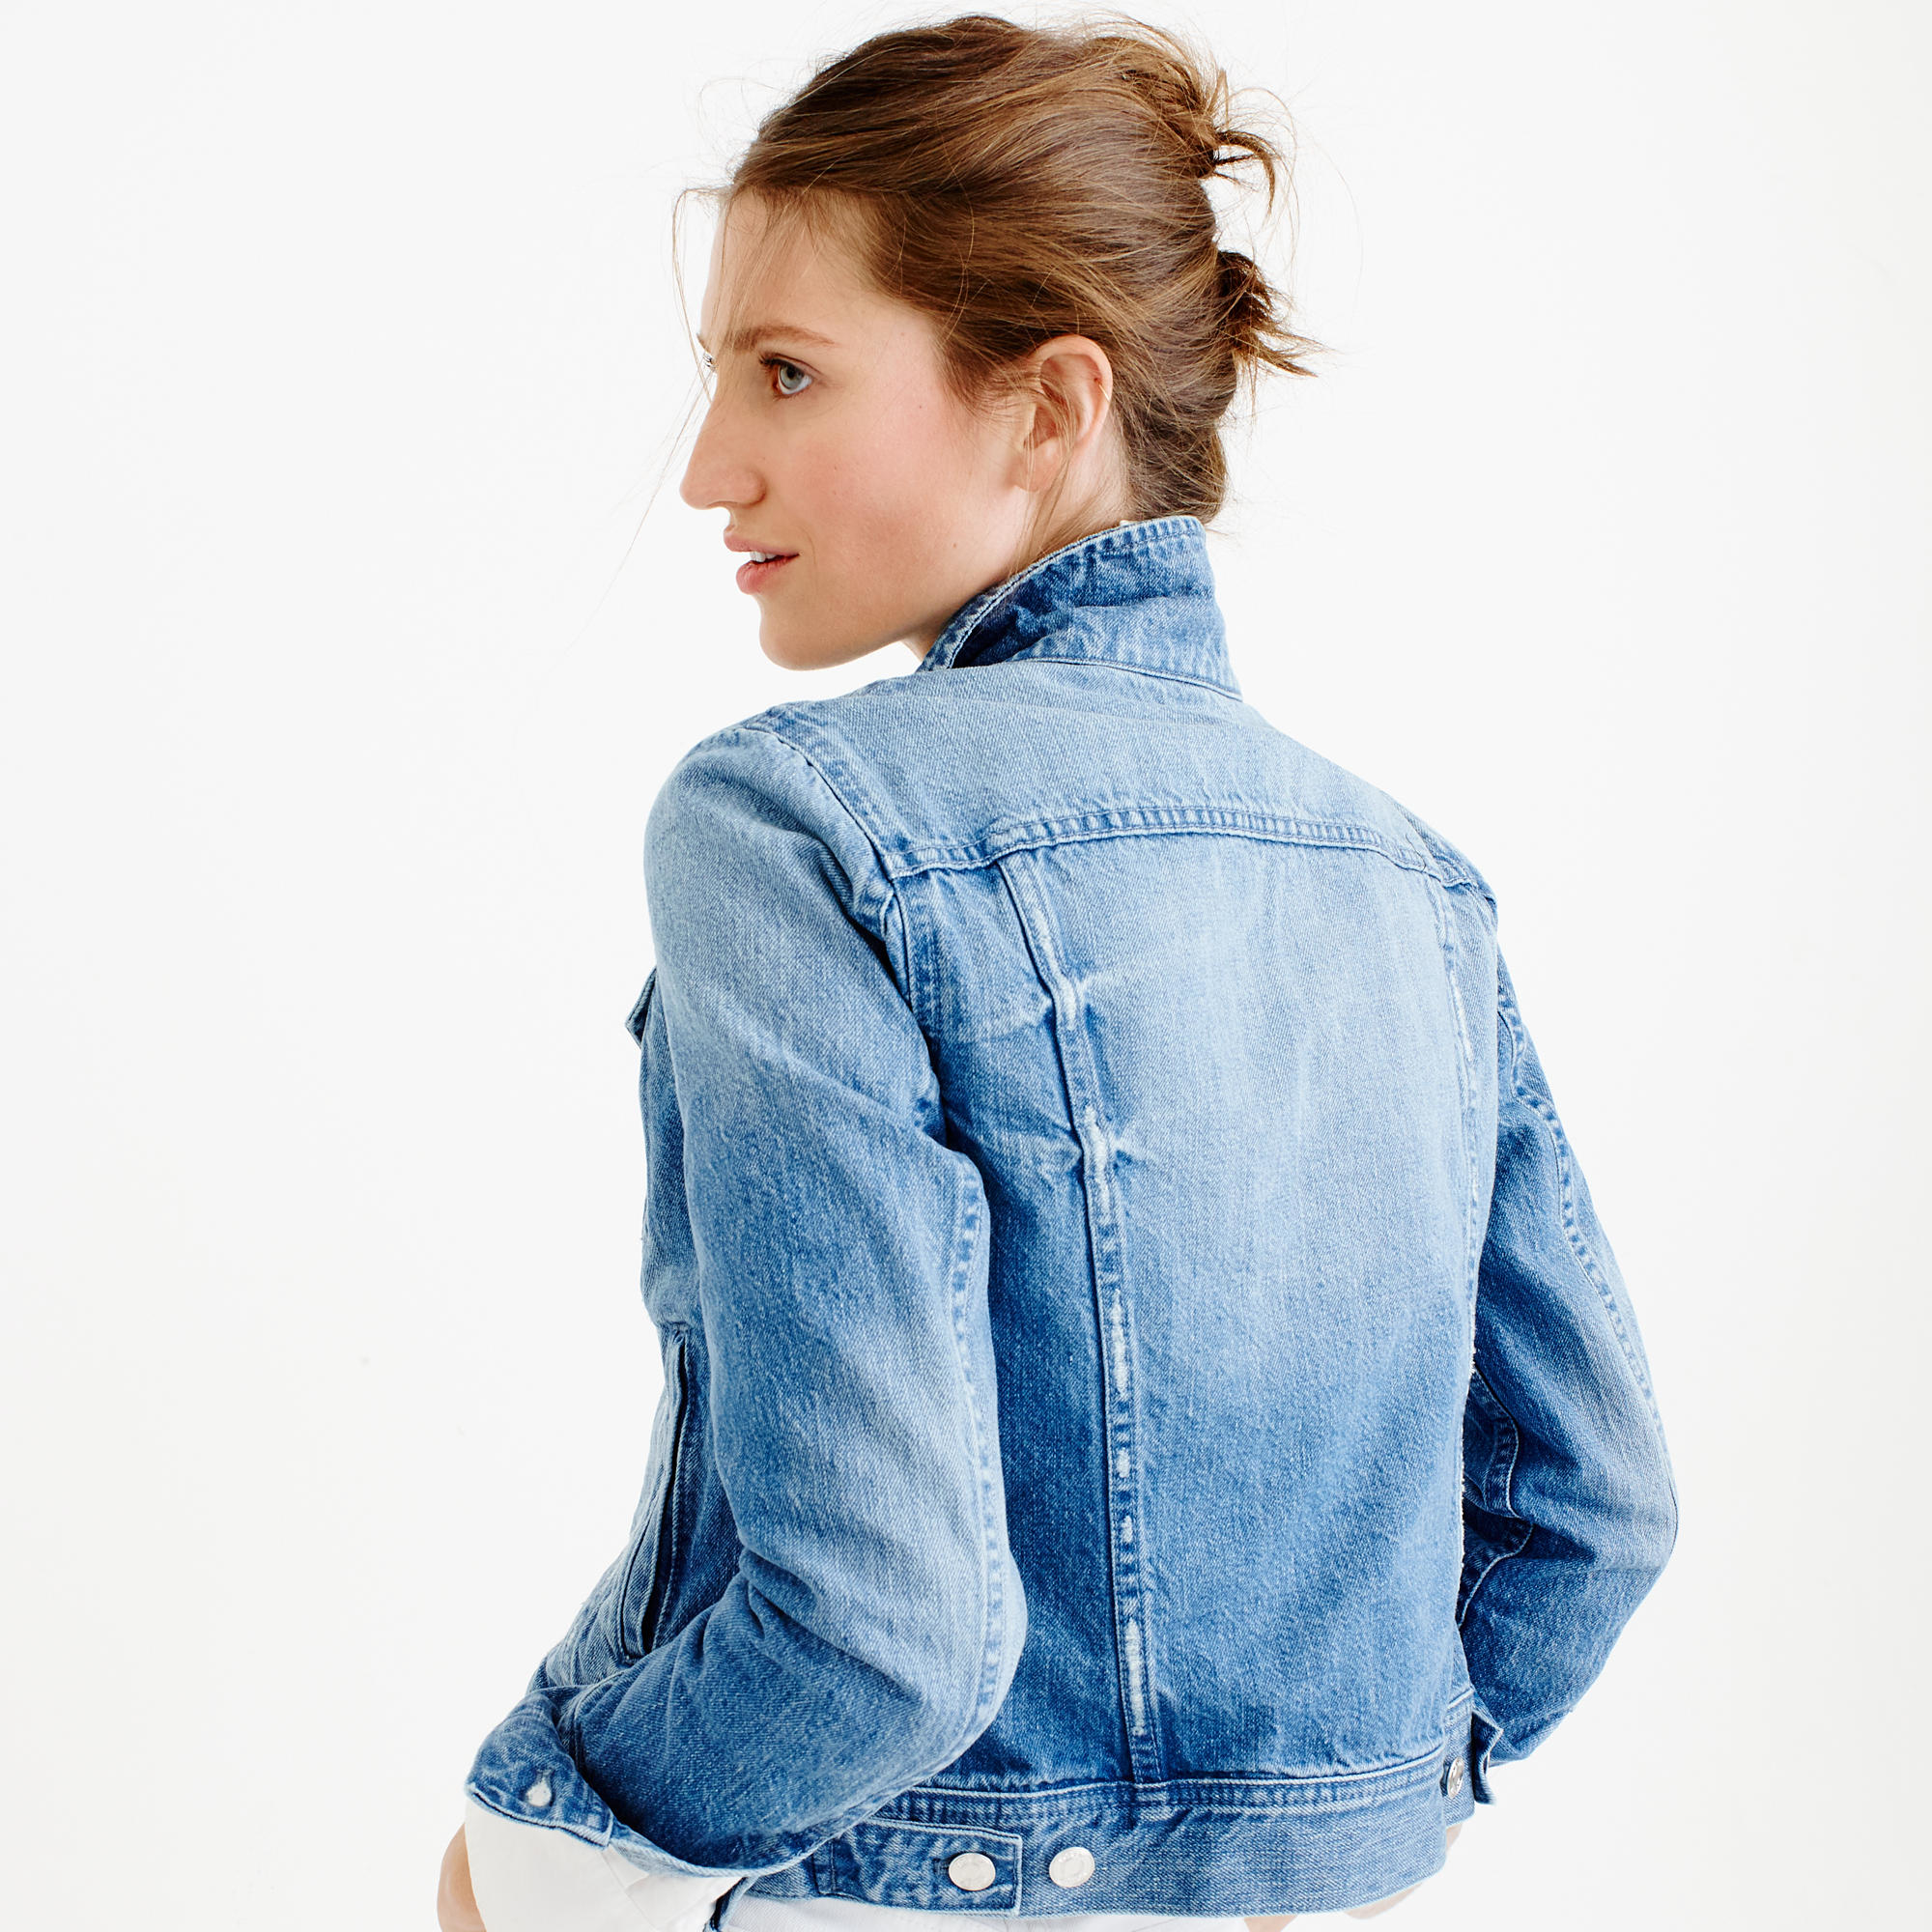 Jcrew Petite Denim Jacket In Holston Wash In Blue - Lyst-8408